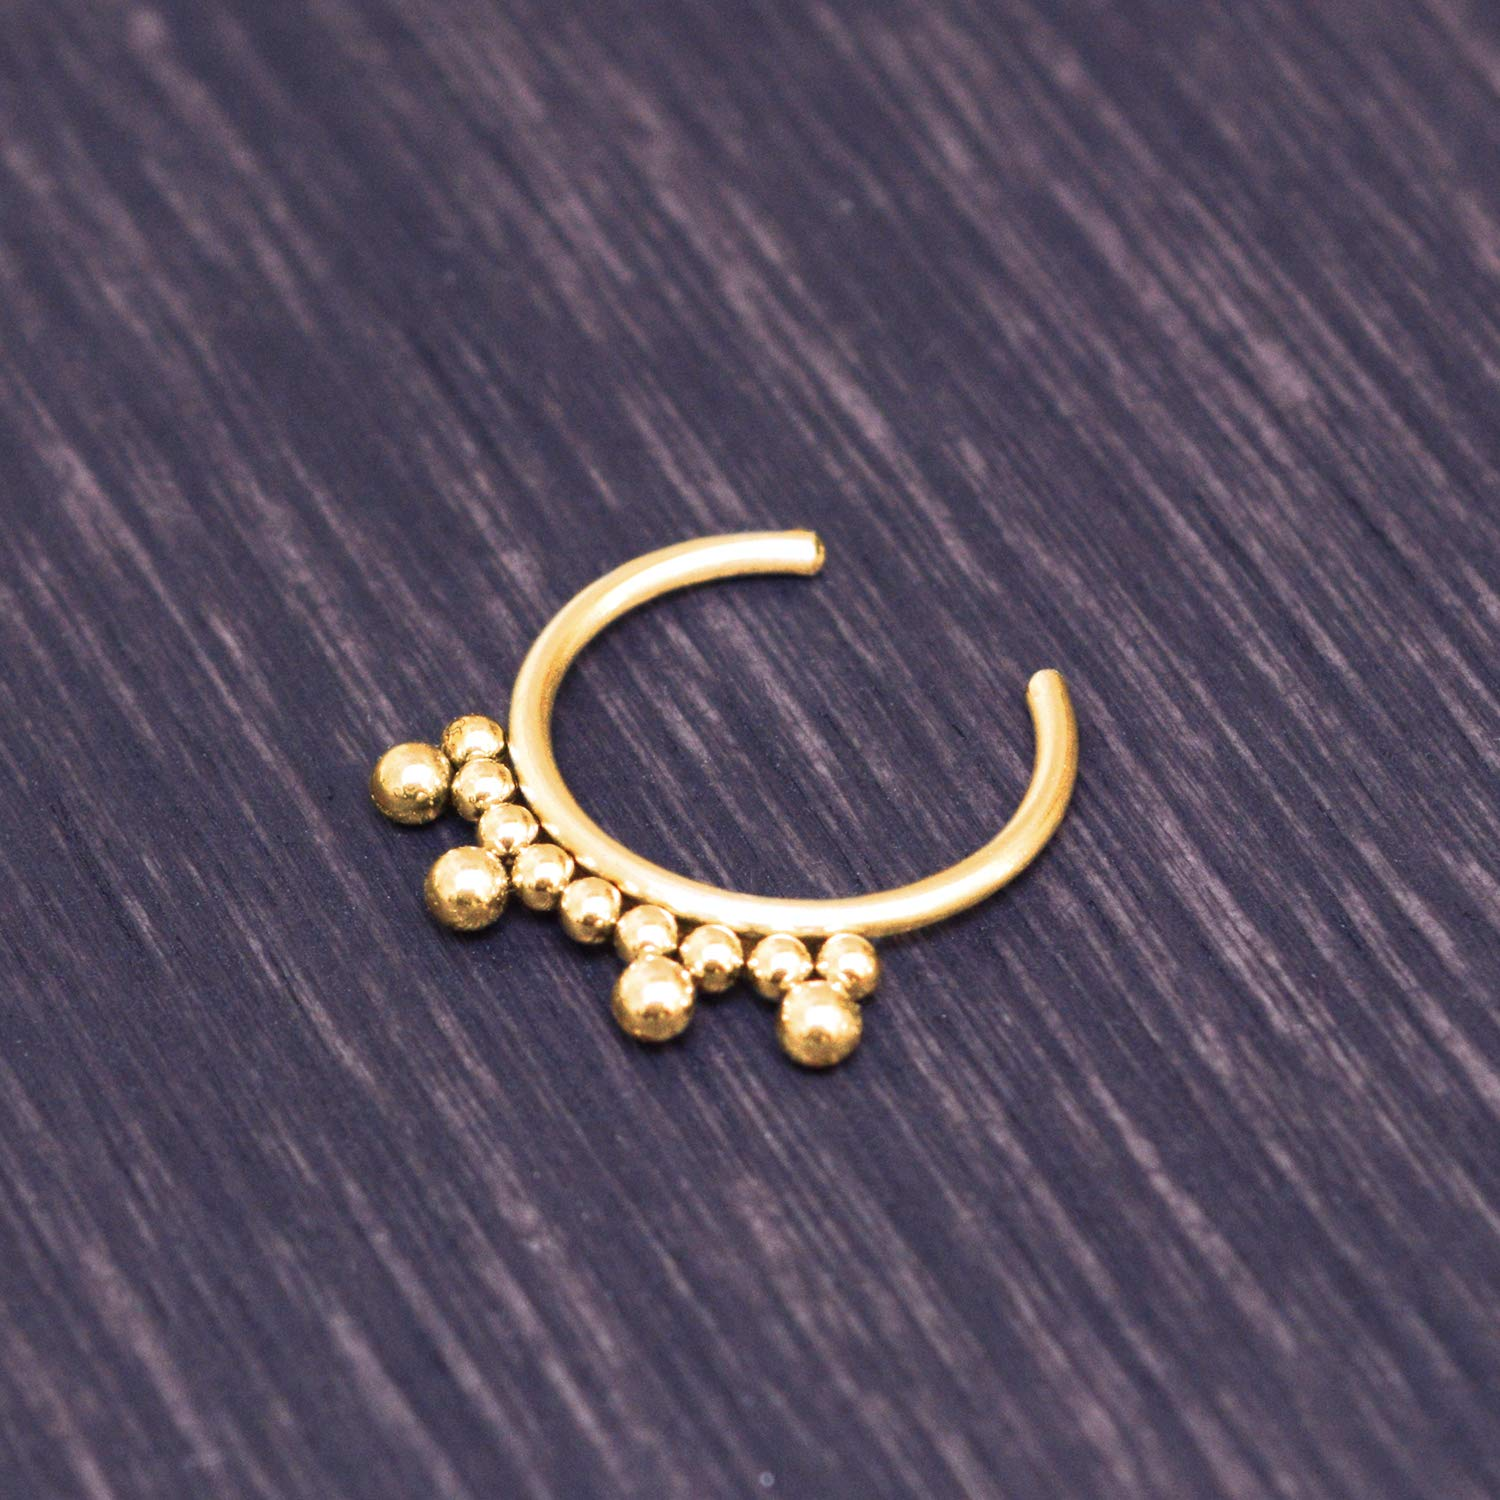 Non Pierced Nose Septum Ring Fake Nose Cuff Surgical Steel